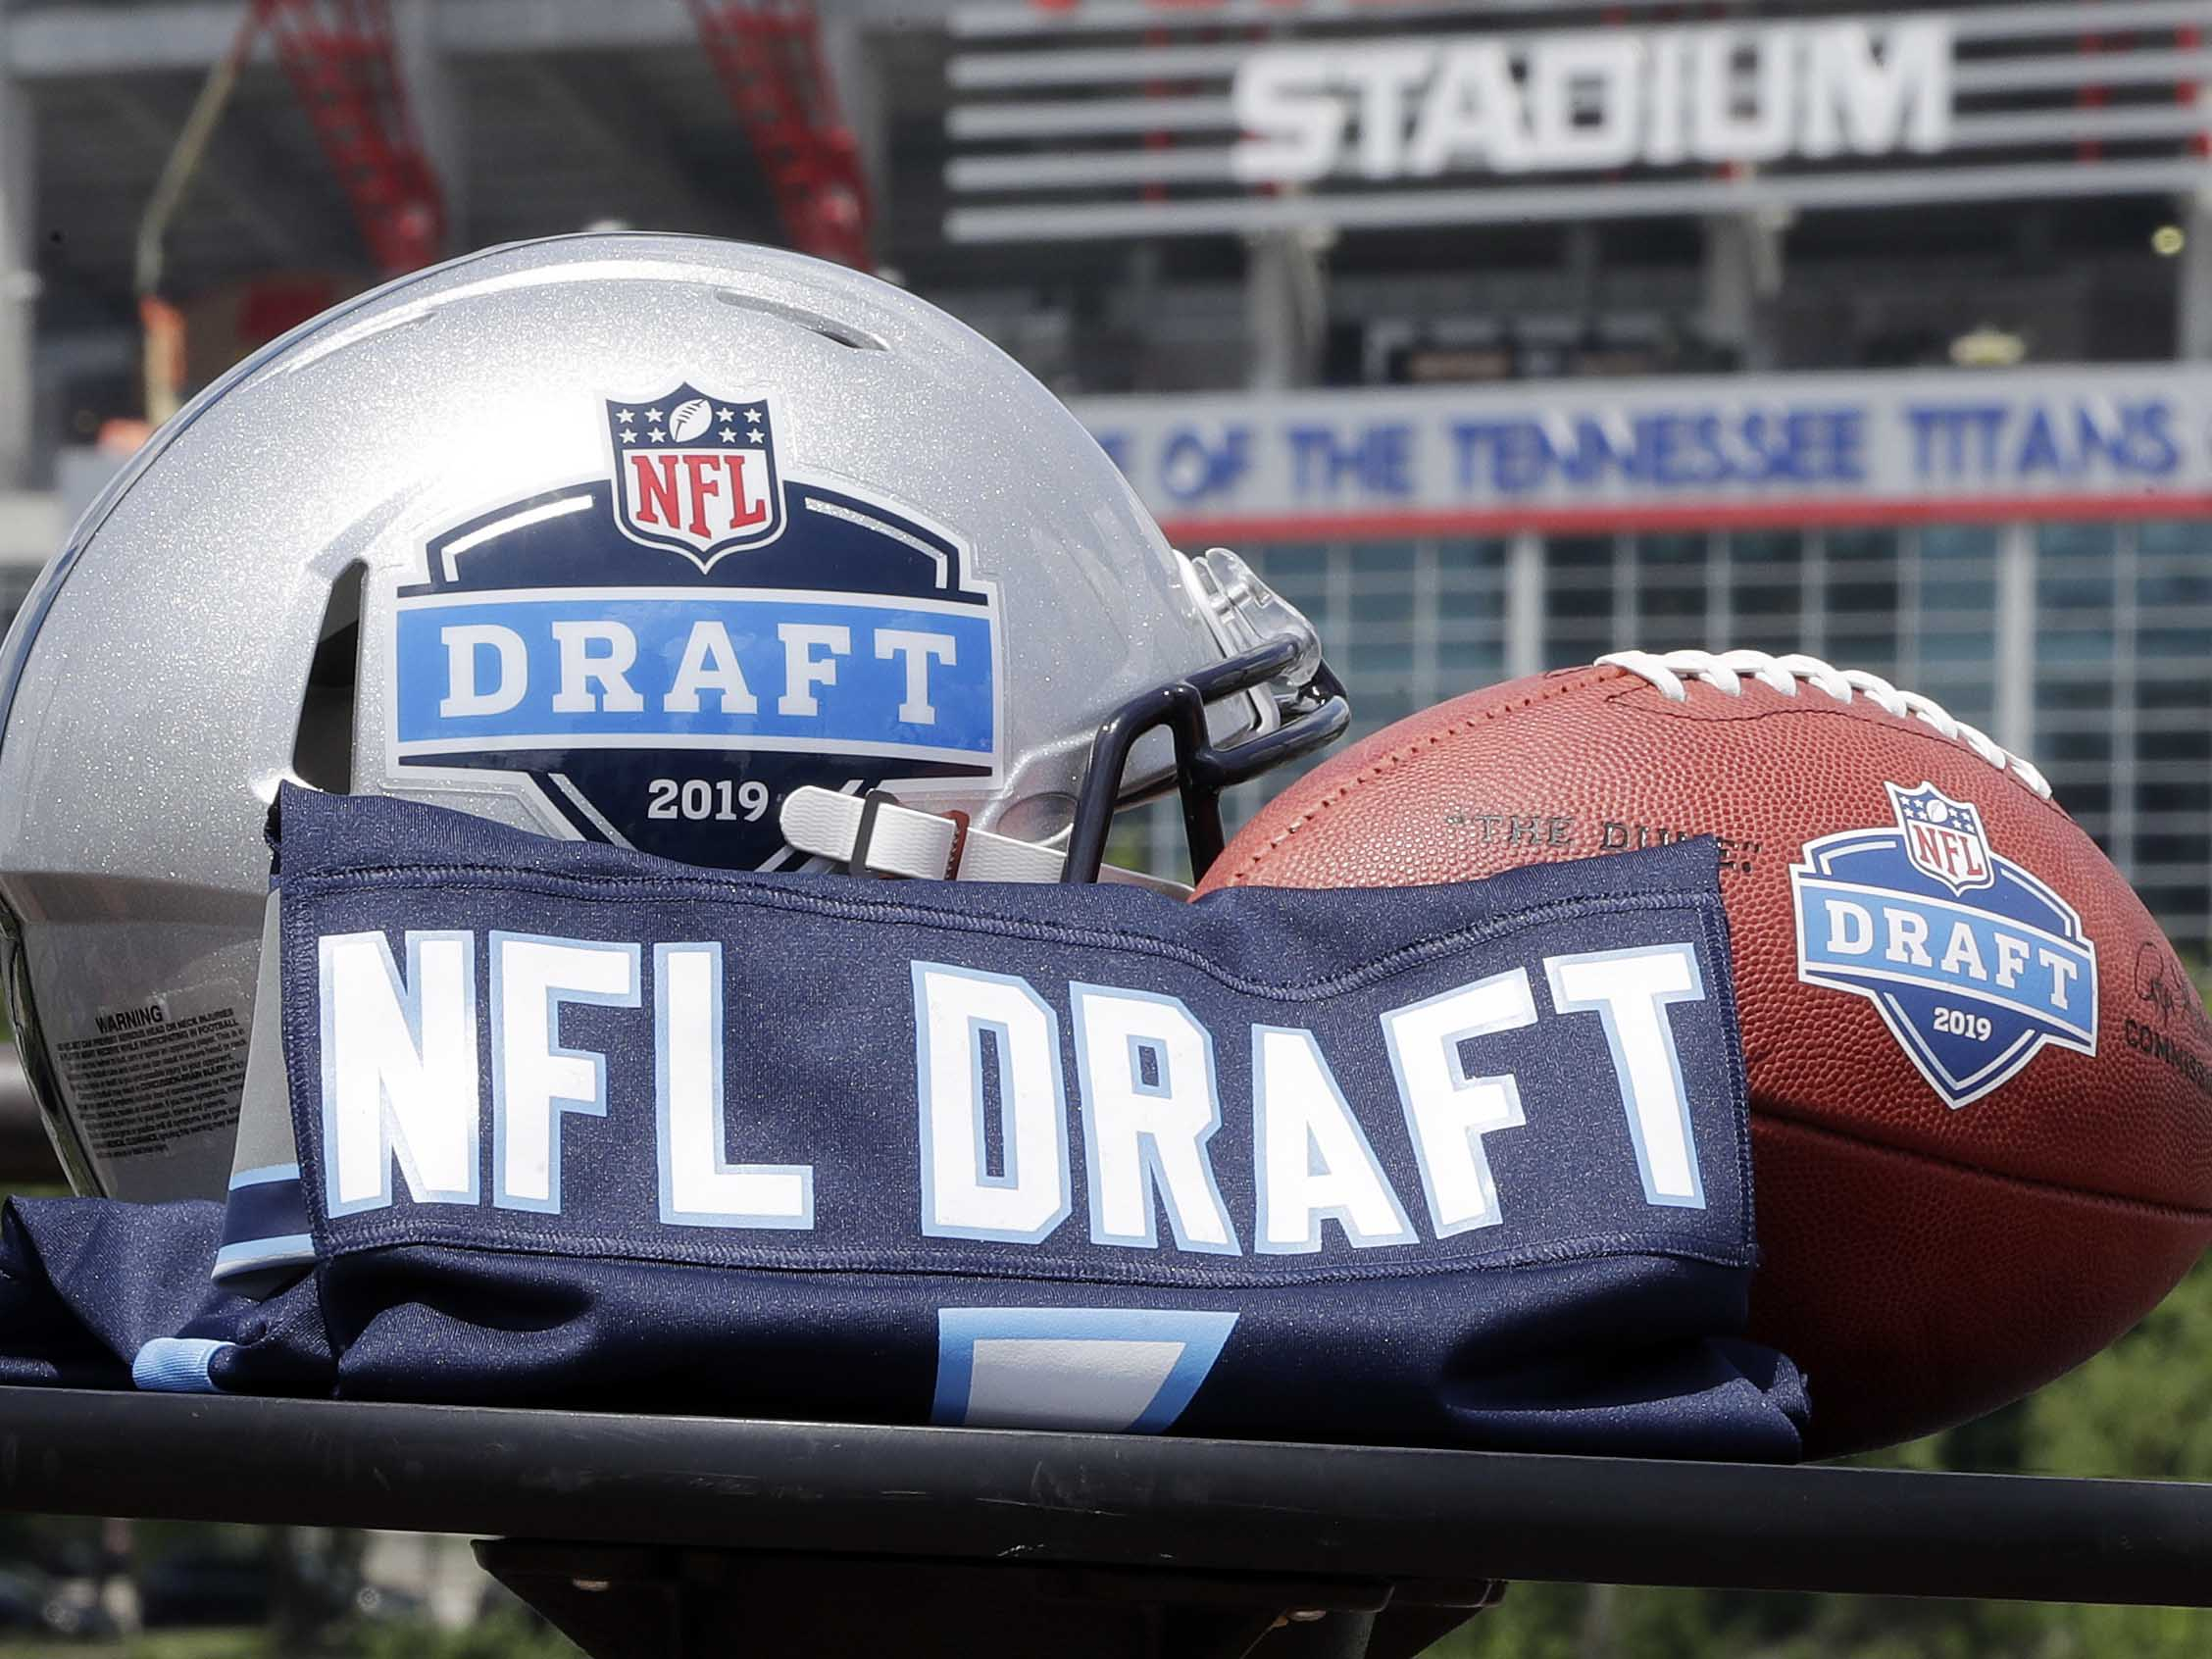 How to watch the 2019 NFL Draf...